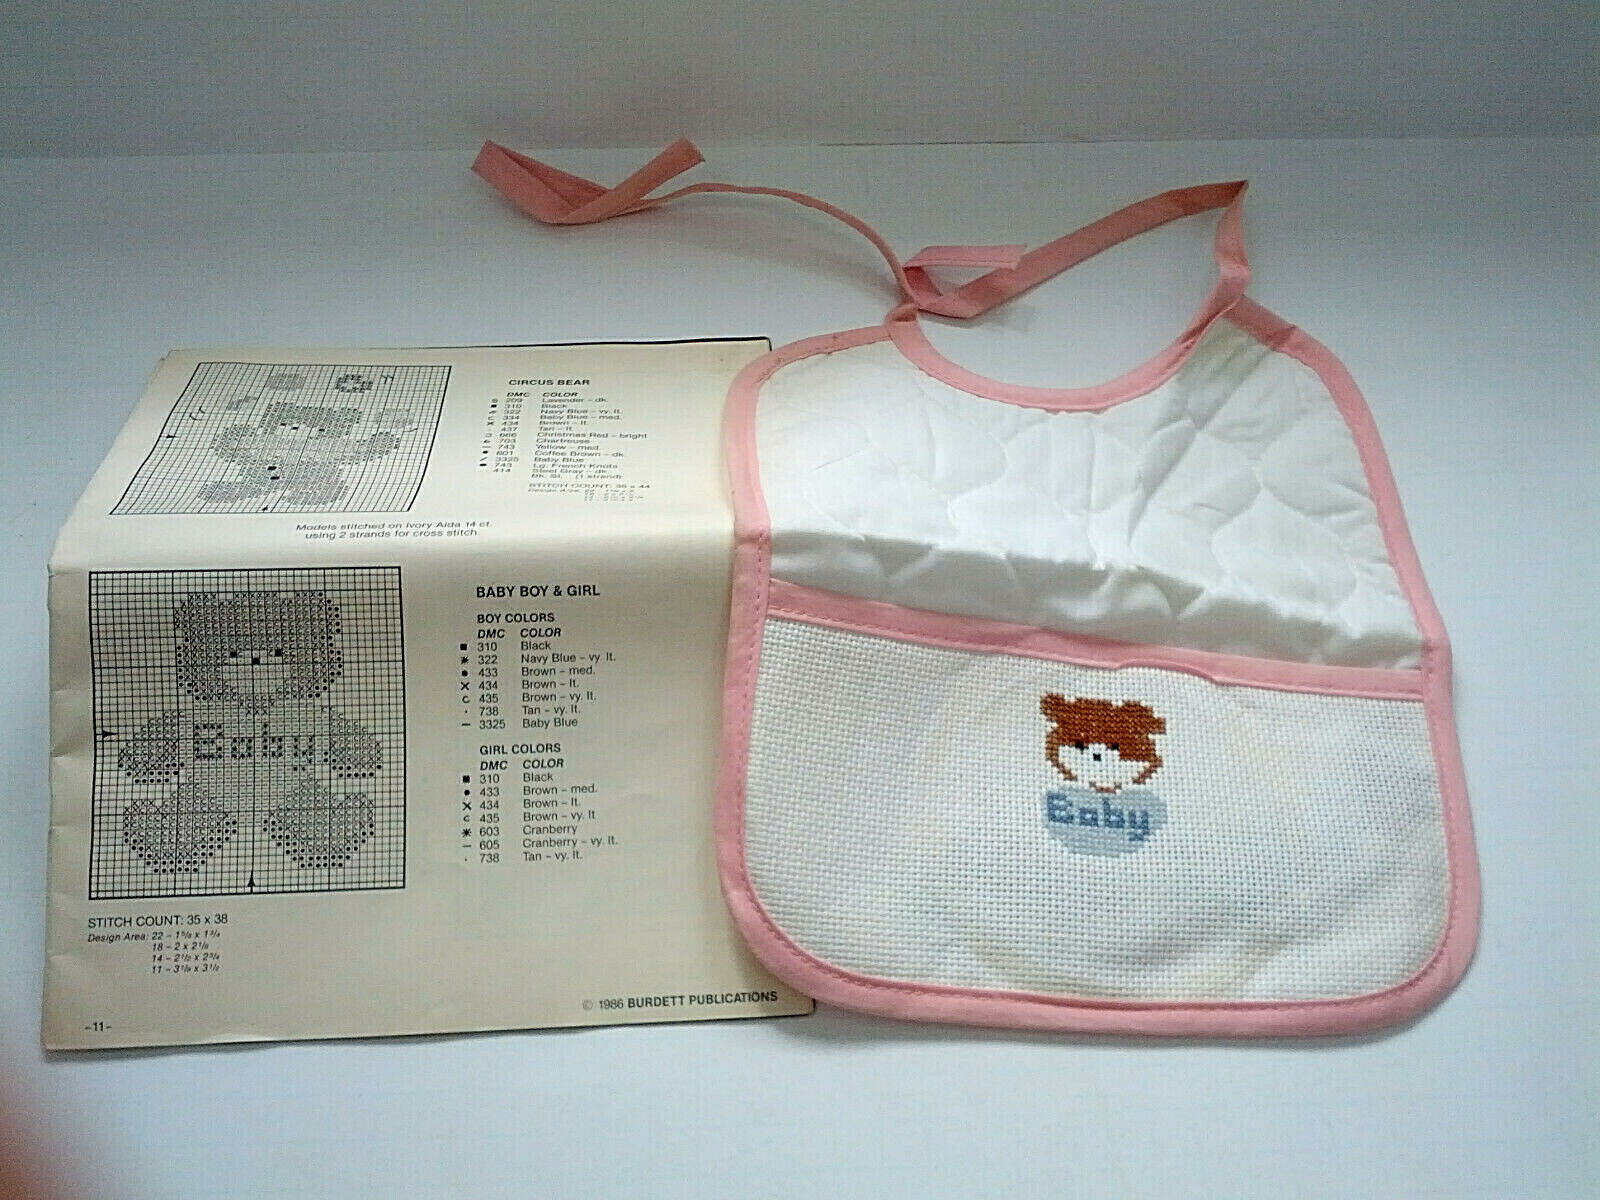 vintage cross stitch pink trim  baby bib partially finished with pattern booklet - $19.75